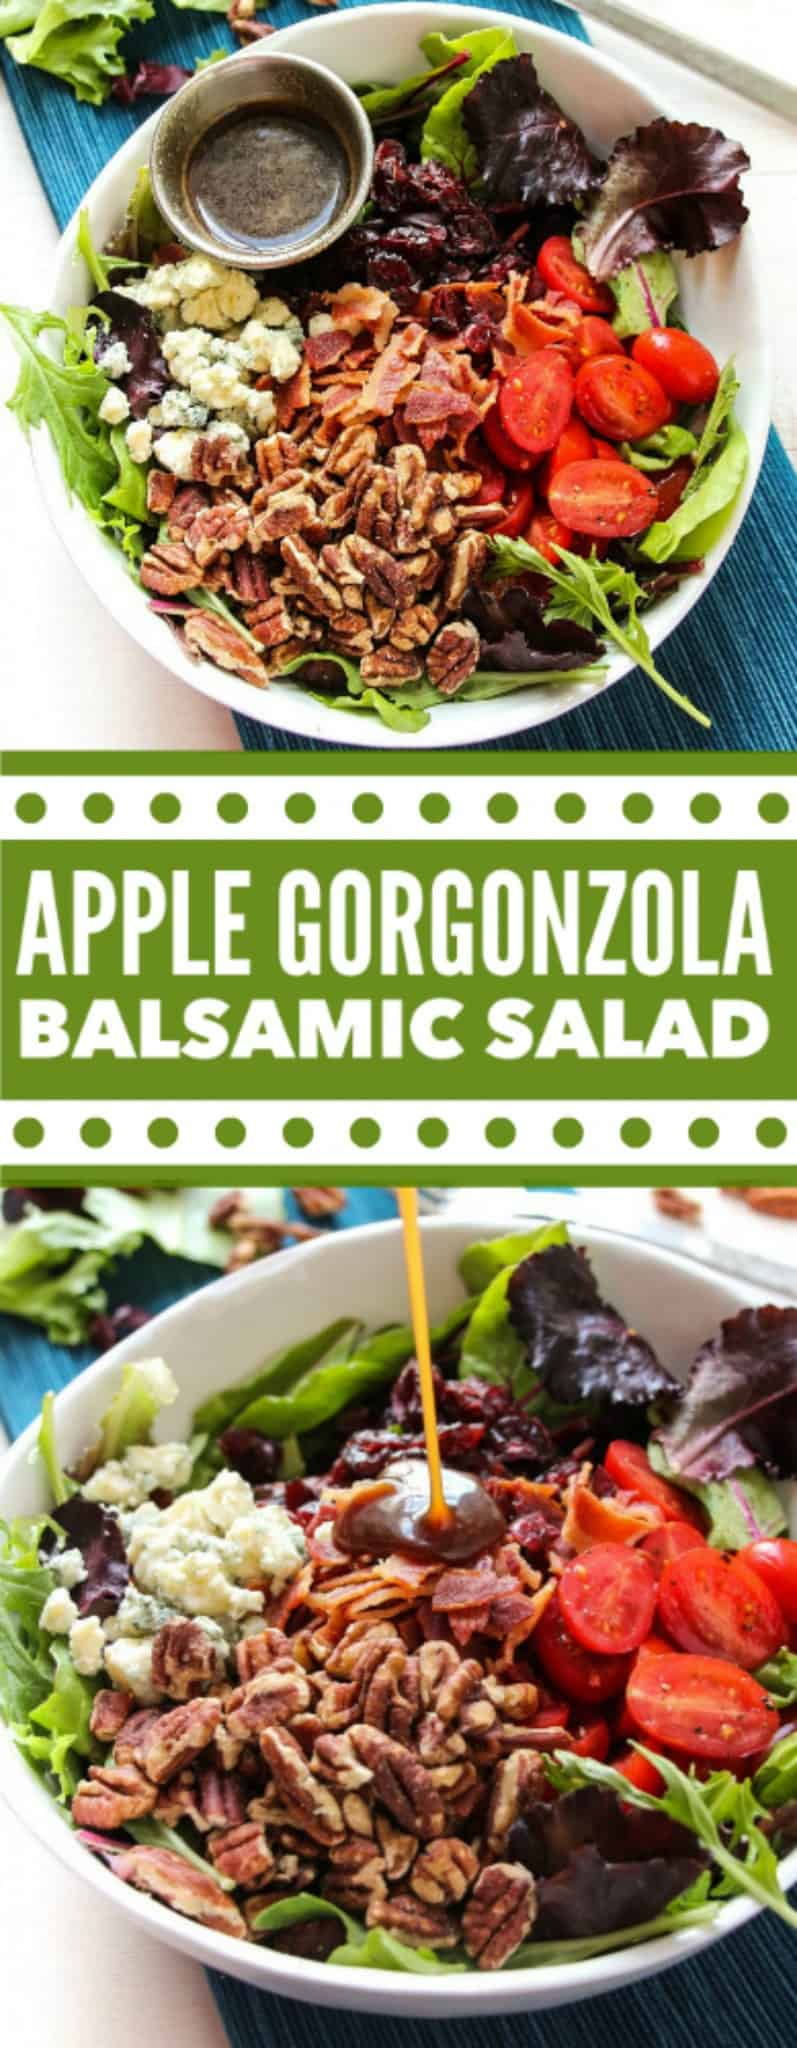 balsamic-salad-pinterest